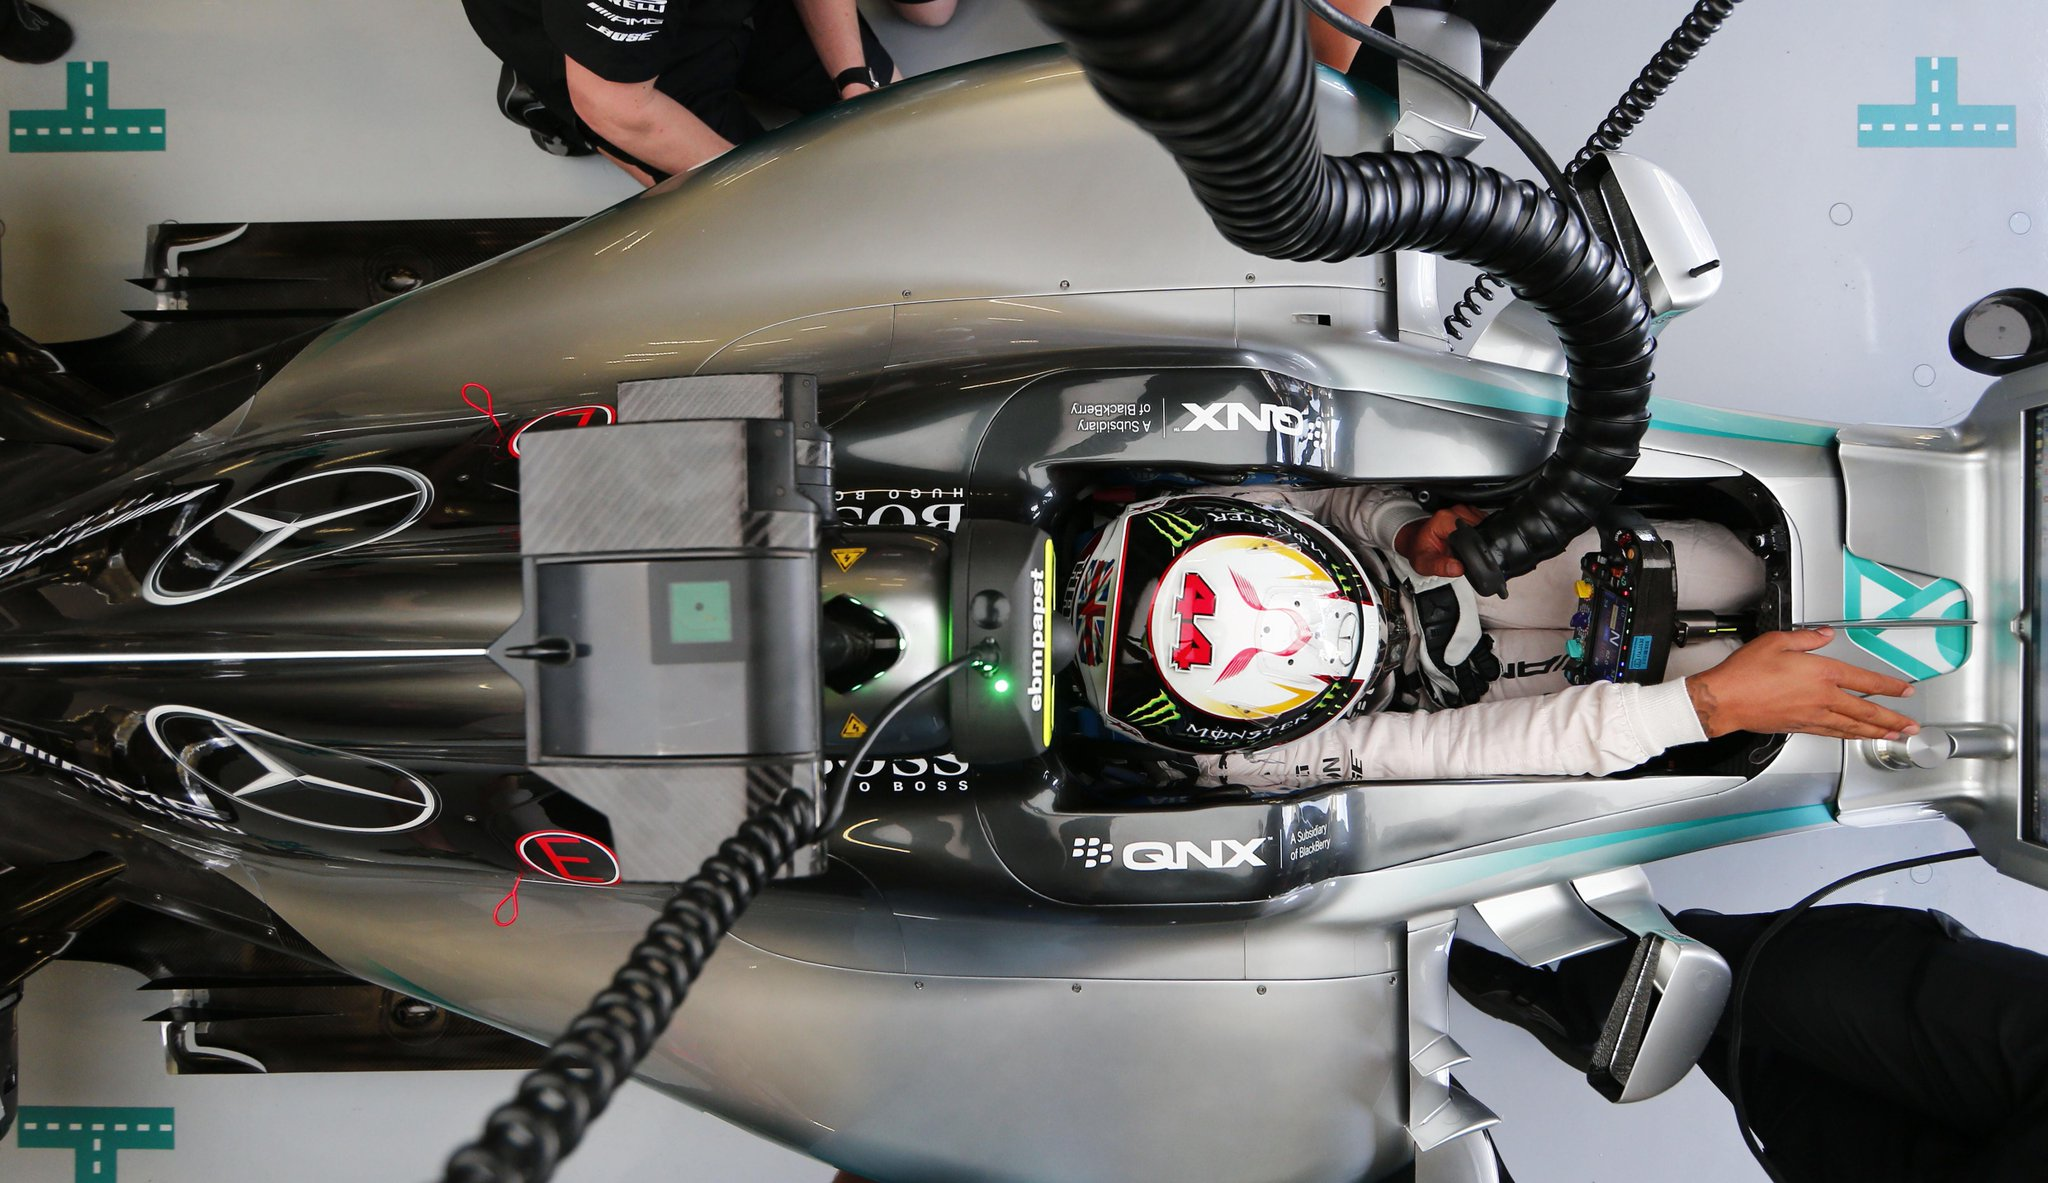 Had a great #FP3! The car is feeling great today. Let's keep our fingers crossed for #Qualifying! #BritishGP #TeamLH http://t.co/7DFN5MGM2i